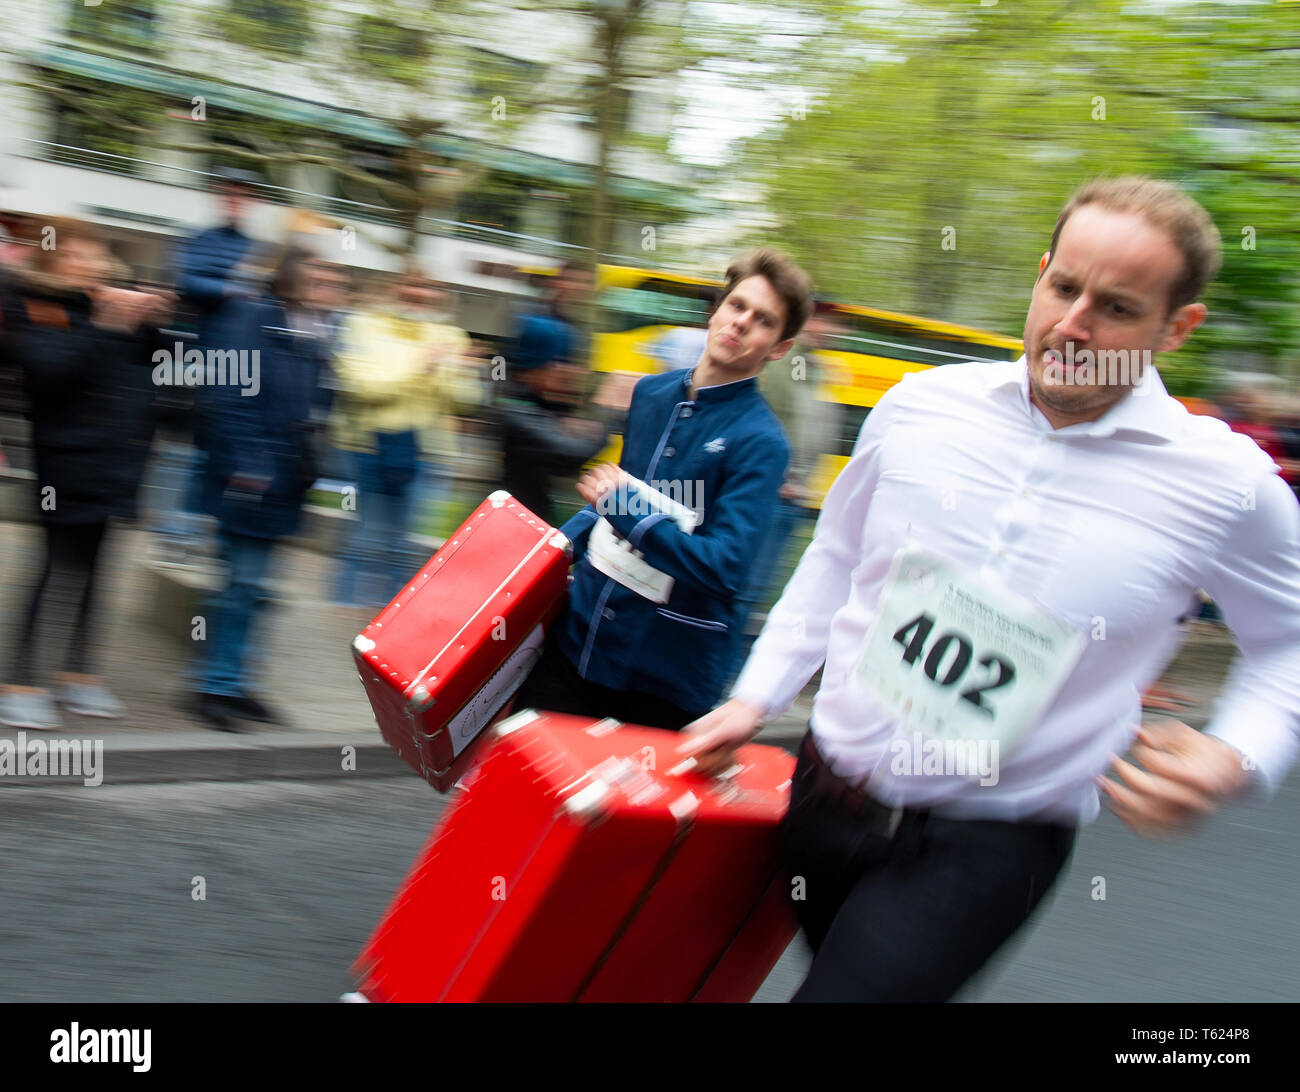 Berlin, Germany. 28th Apr, 2019. Two bellboys with filled suitcases pass the spectators at the 9th Berlin Waiter Run. Waiters, barkeepers, chefs and bellboys compete in the art of fast gastronomy. The 400 meter long running track is located on the one-sided closed Kudamm. Credit: Monika Skolimowska/dpa-Zentralbild/dpa/Alamy Live News Stock Photo